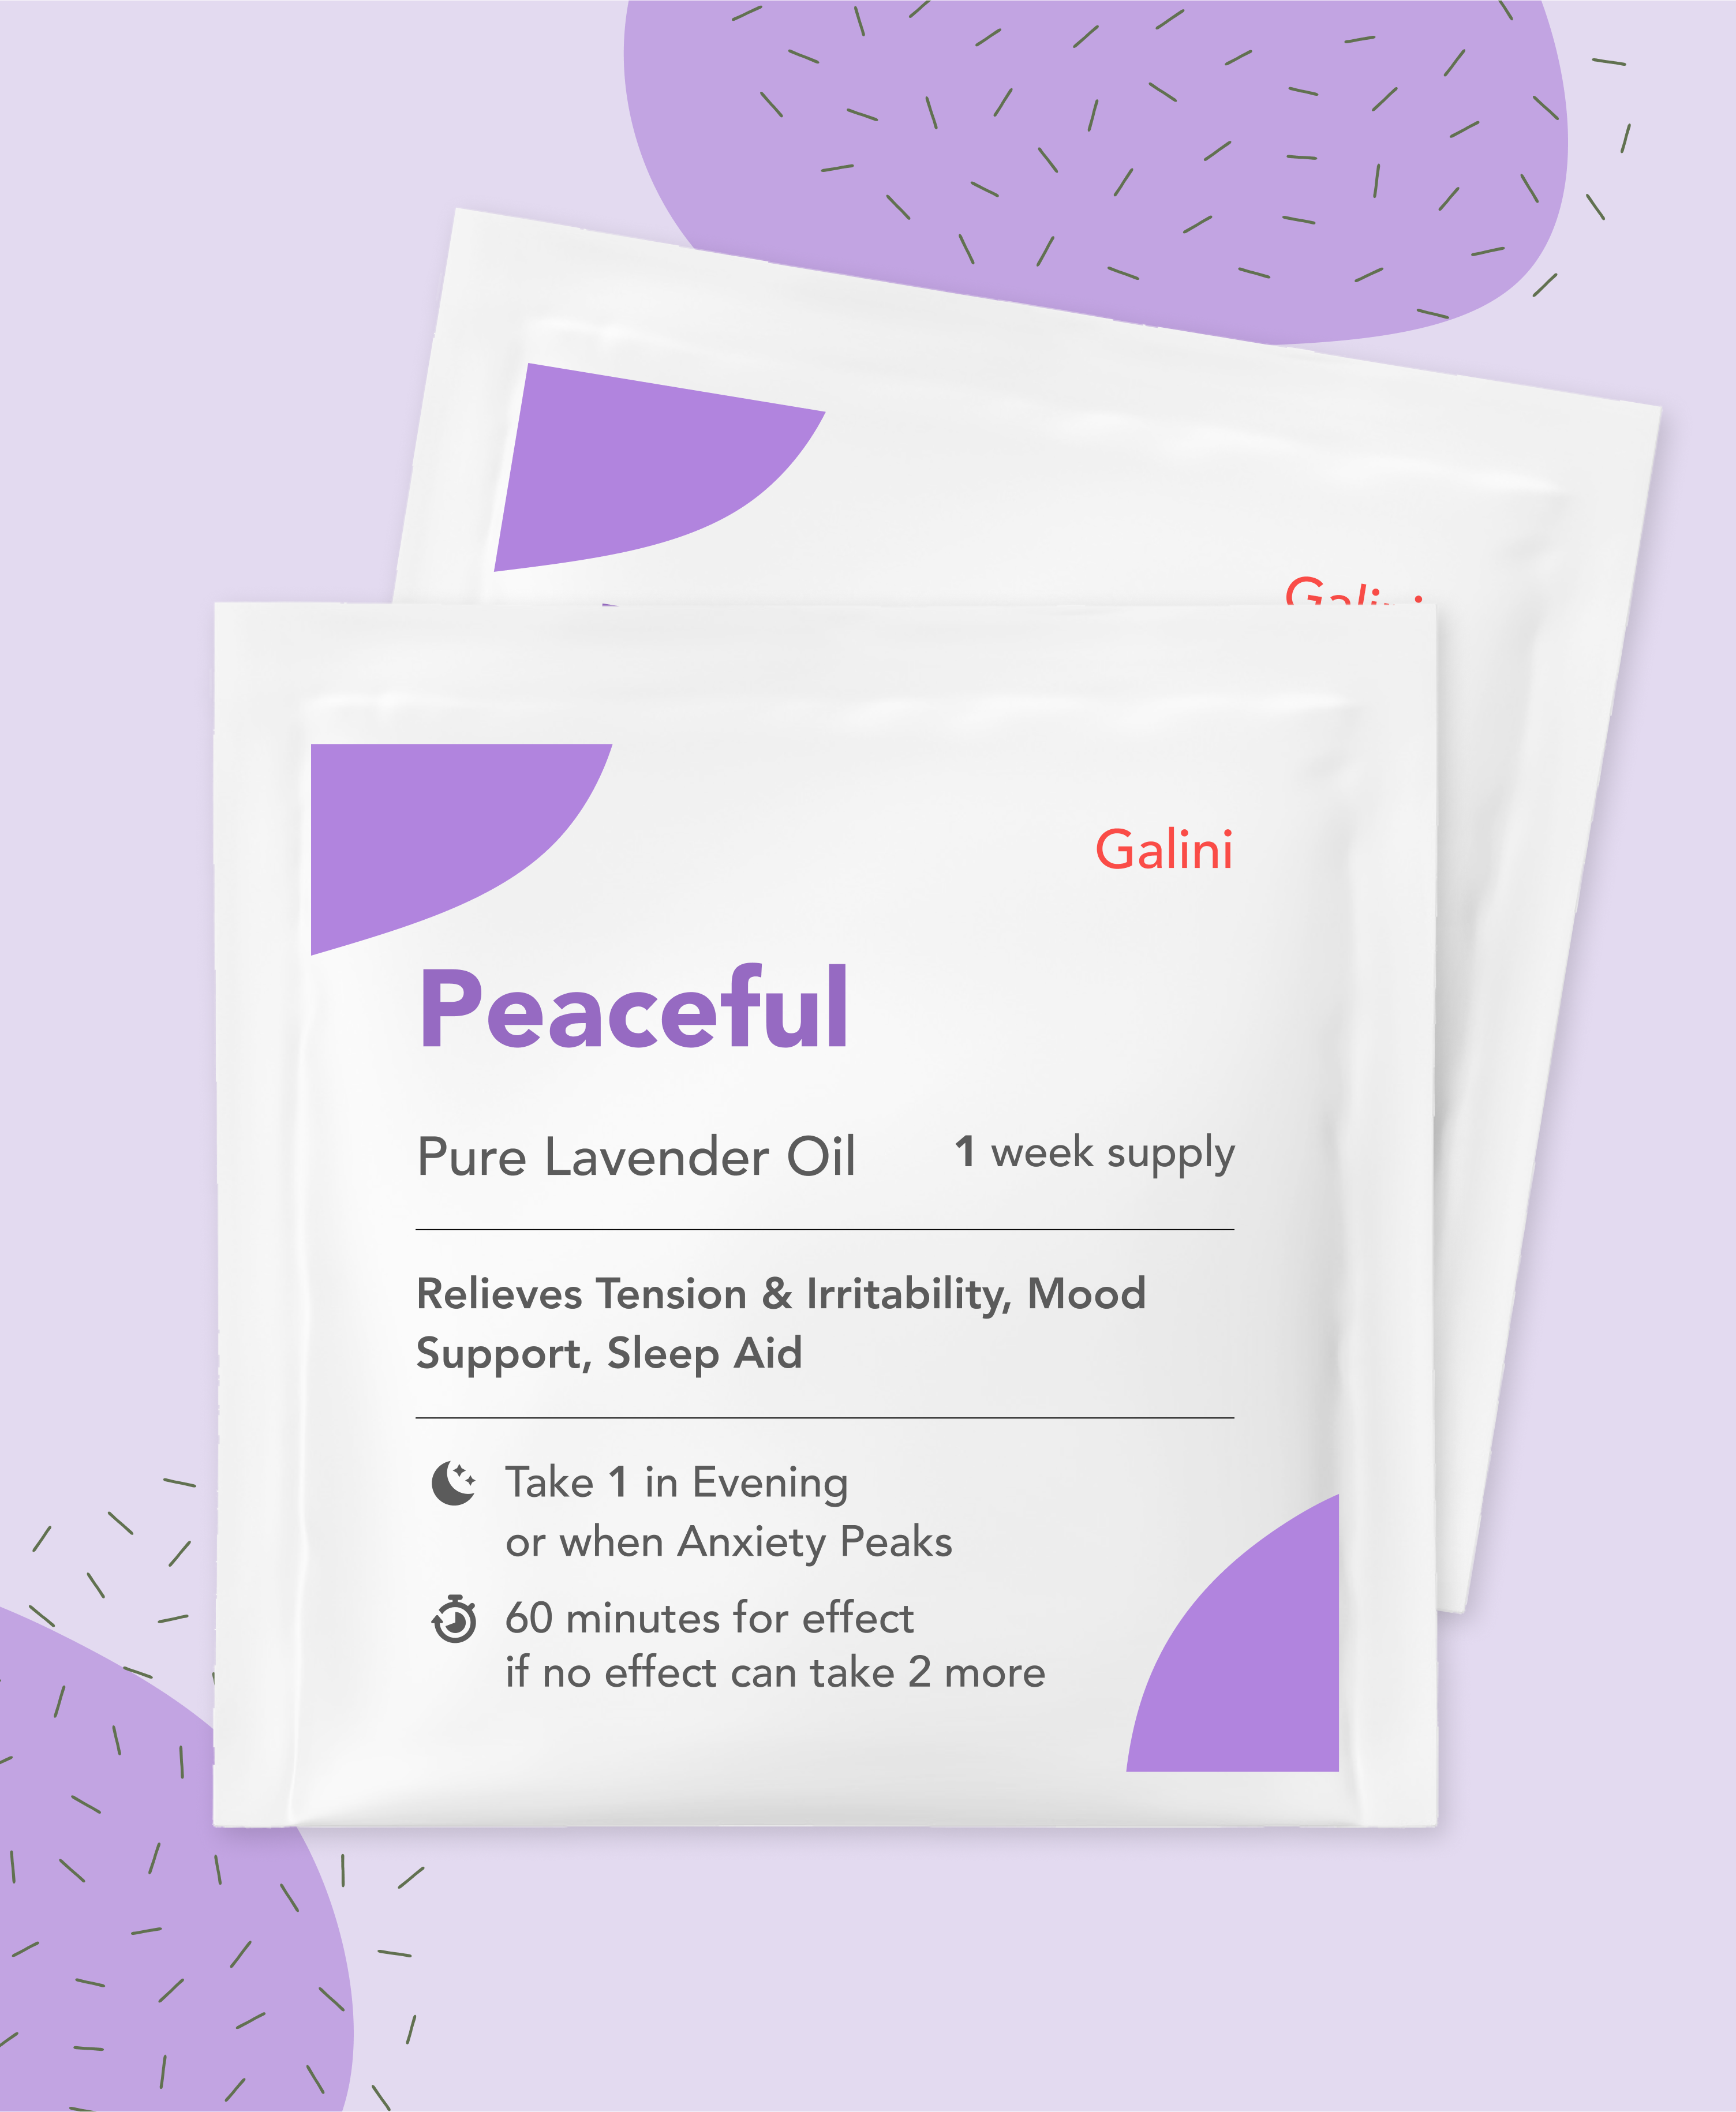 Peaceful supplement containing Lavender oil